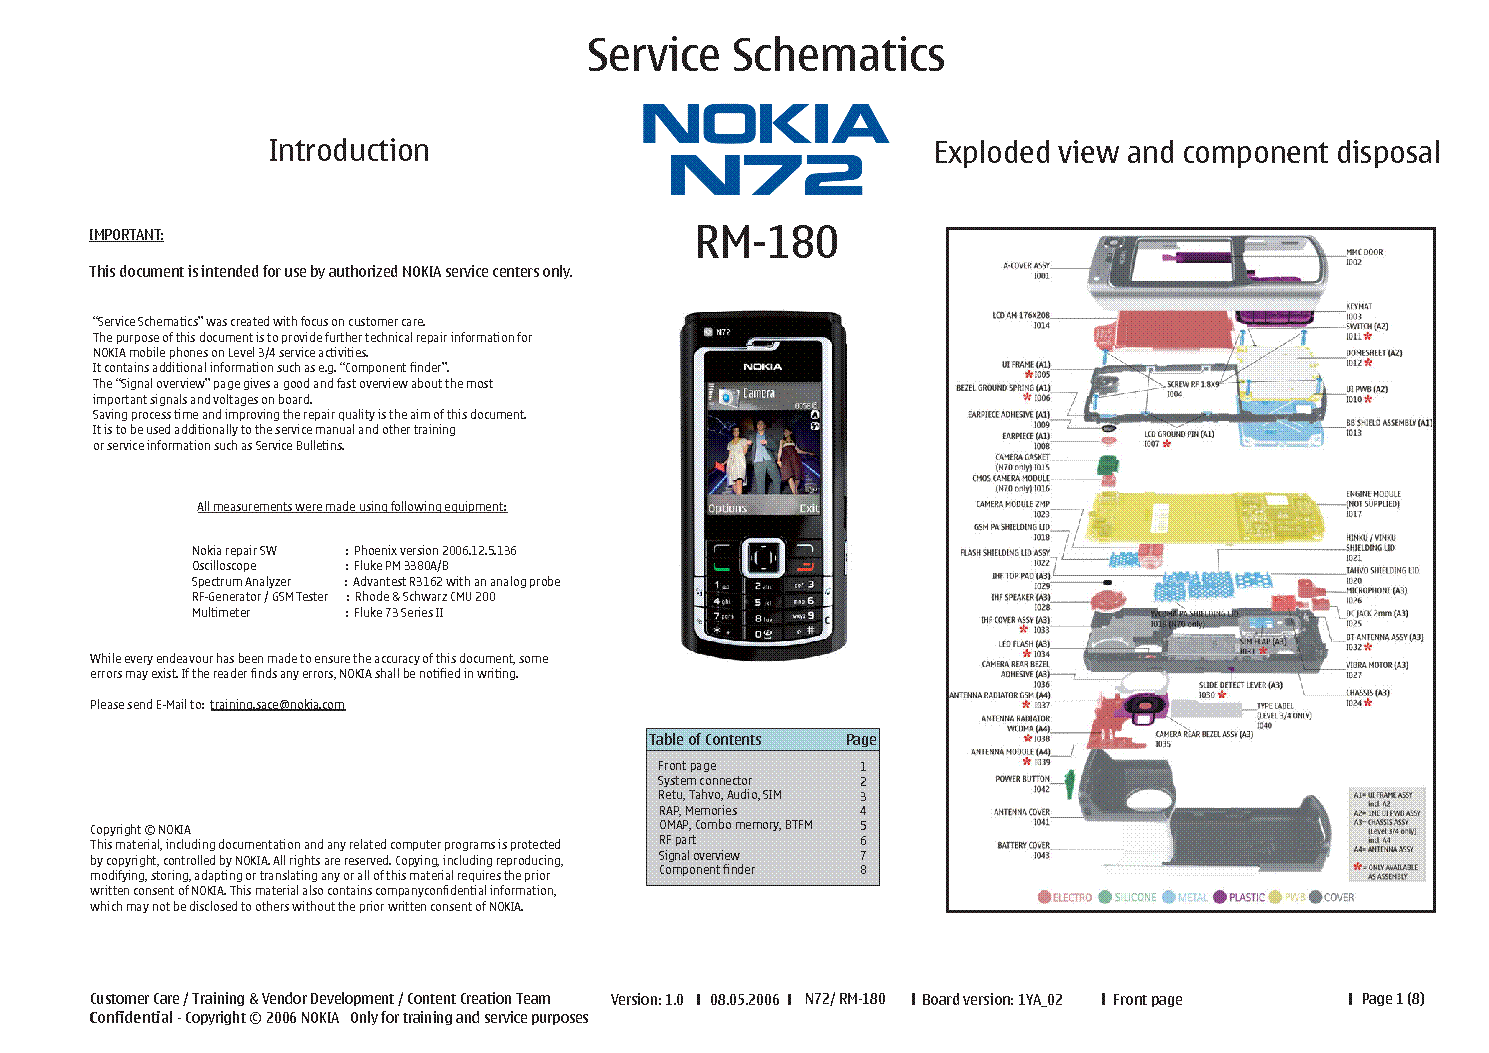 nokia n72 rm180 schematics service manual download schematics rh elektrotanya com nokia n72 manual pdf nokia n72 service manual